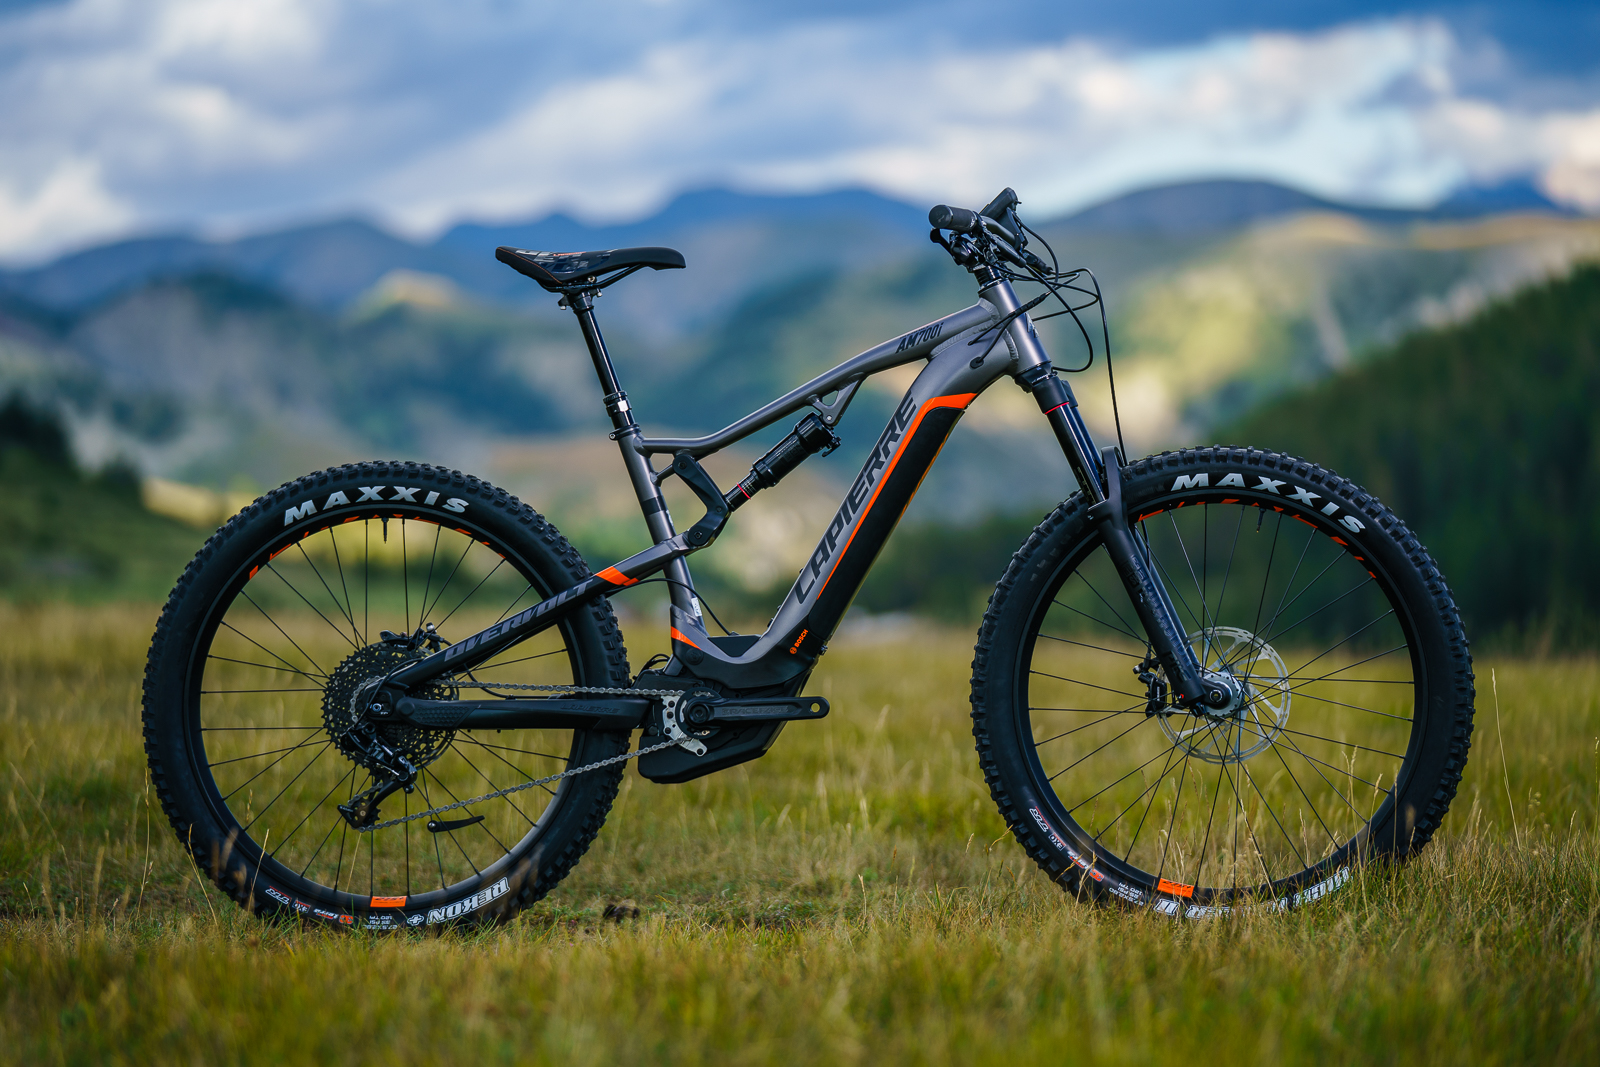 lapierre unveils two new trail e bikes singletrack magazine. Black Bedroom Furniture Sets. Home Design Ideas